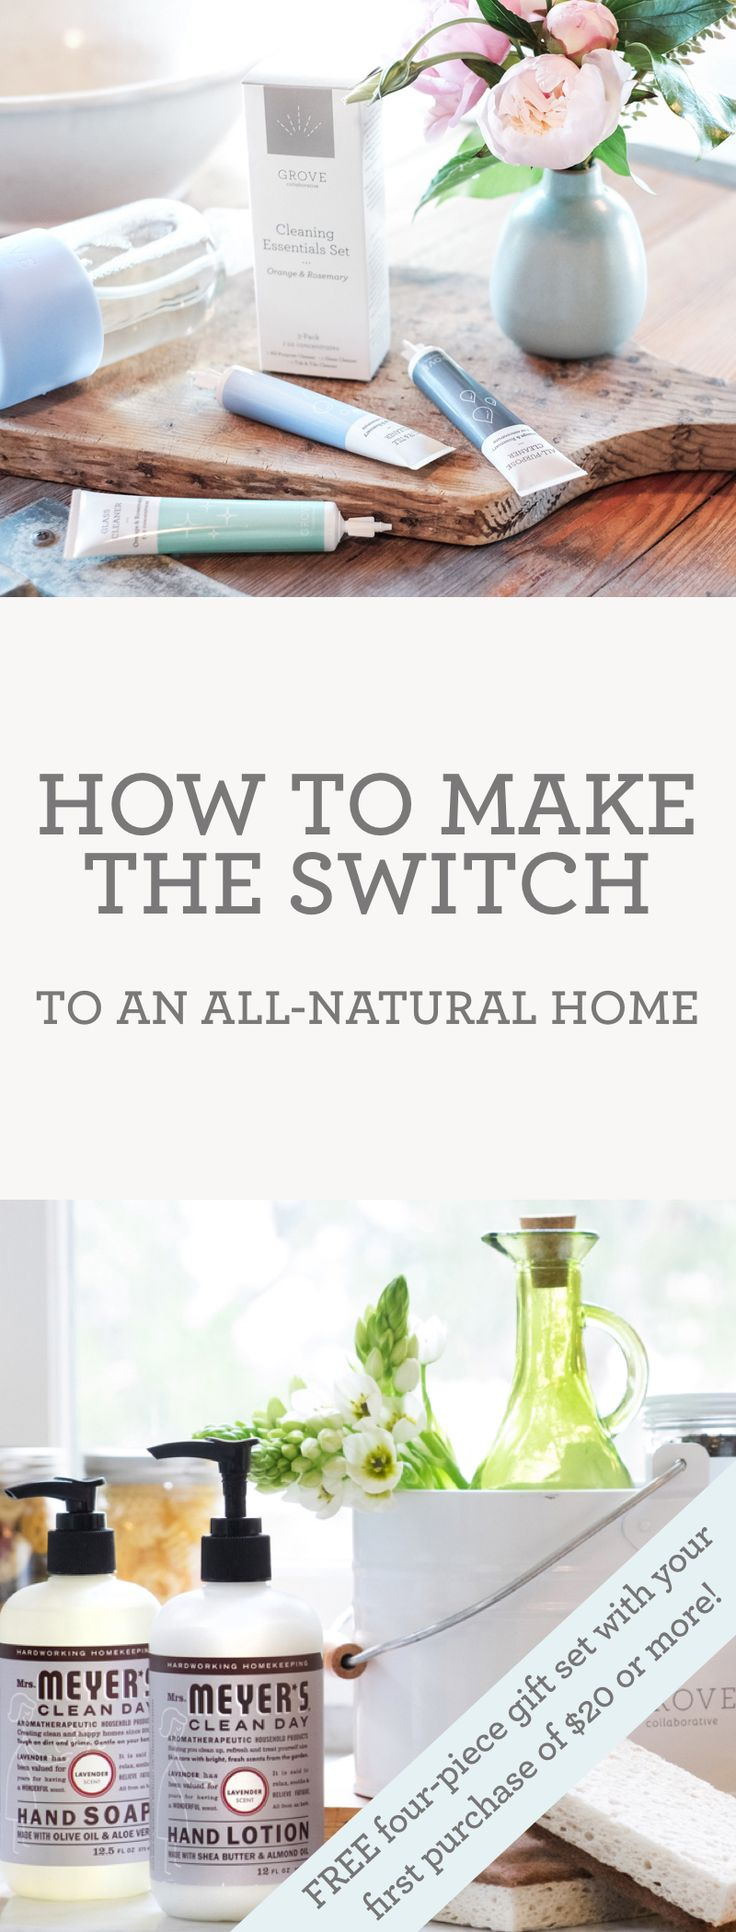 Sign up and discover the best natural household and personal products       https://www.grove.co/s/pinmmcdtrio/?offer=pinmmcdtrio&flow=hiw-spray&utm_medium=social&utm_source=pinprospect&utm_campaign=pinterest&utm_content=home&utm_term=68.2p